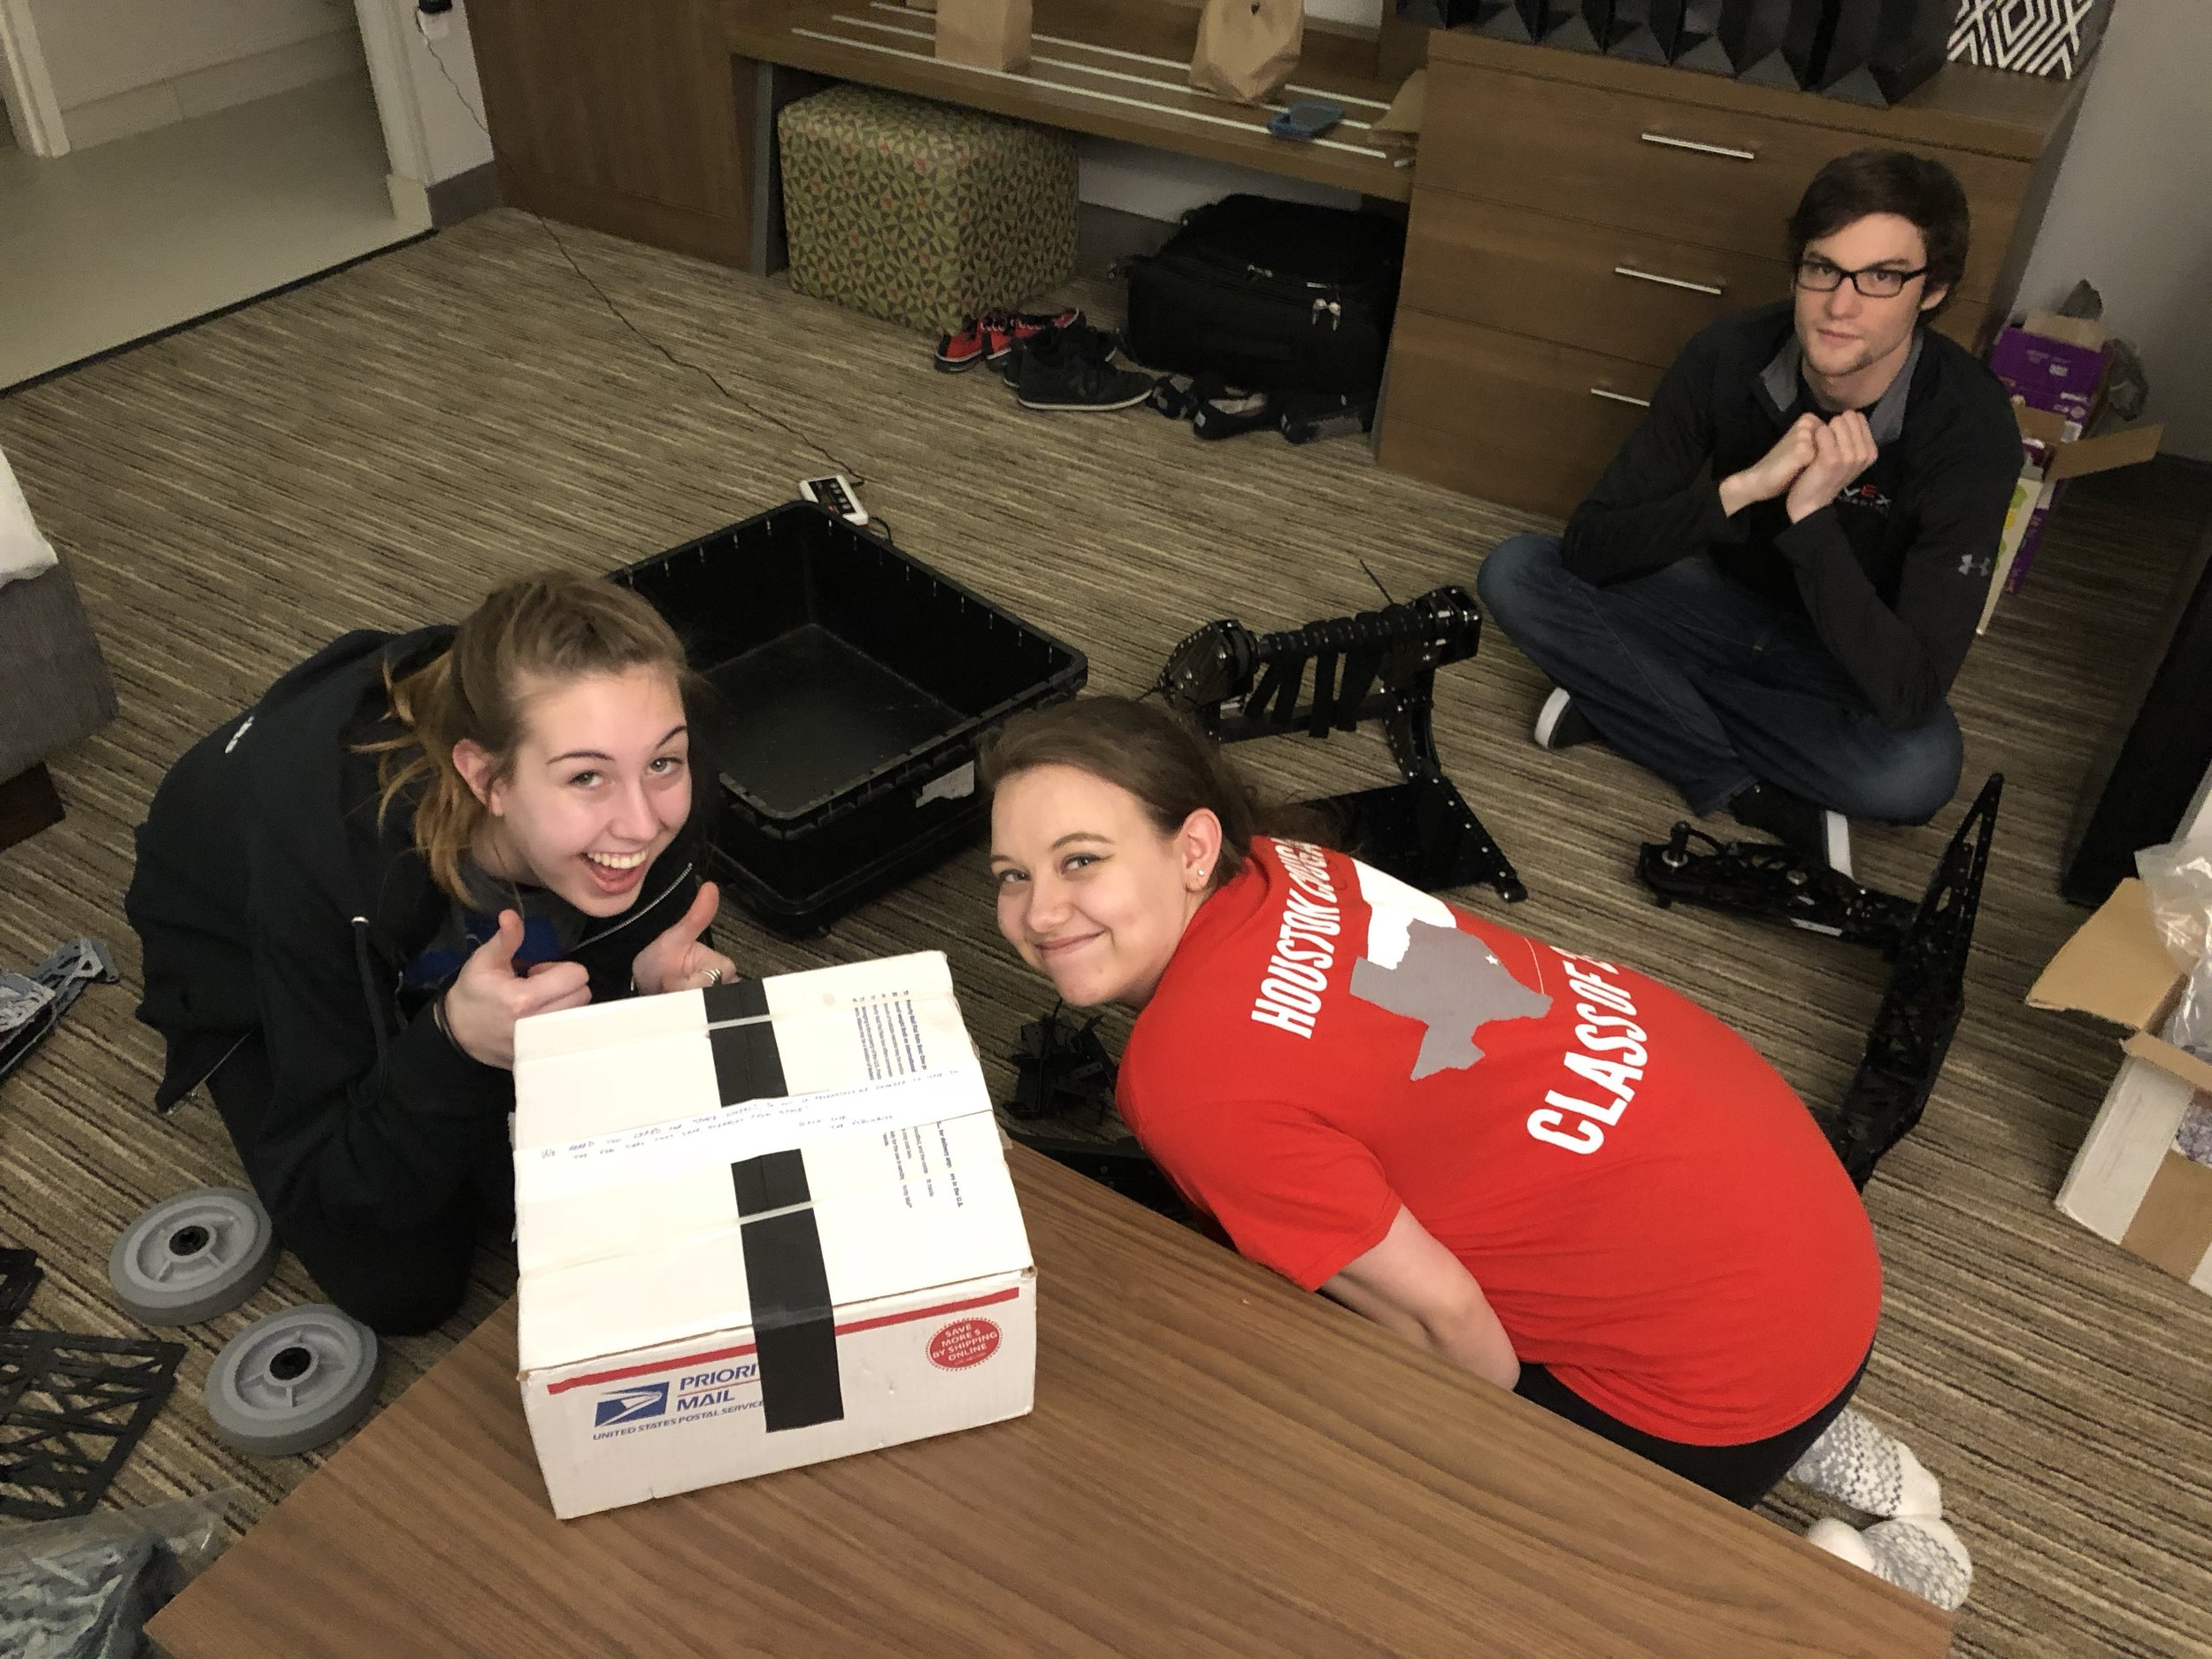 Unboxing pics with Jess and Madison.